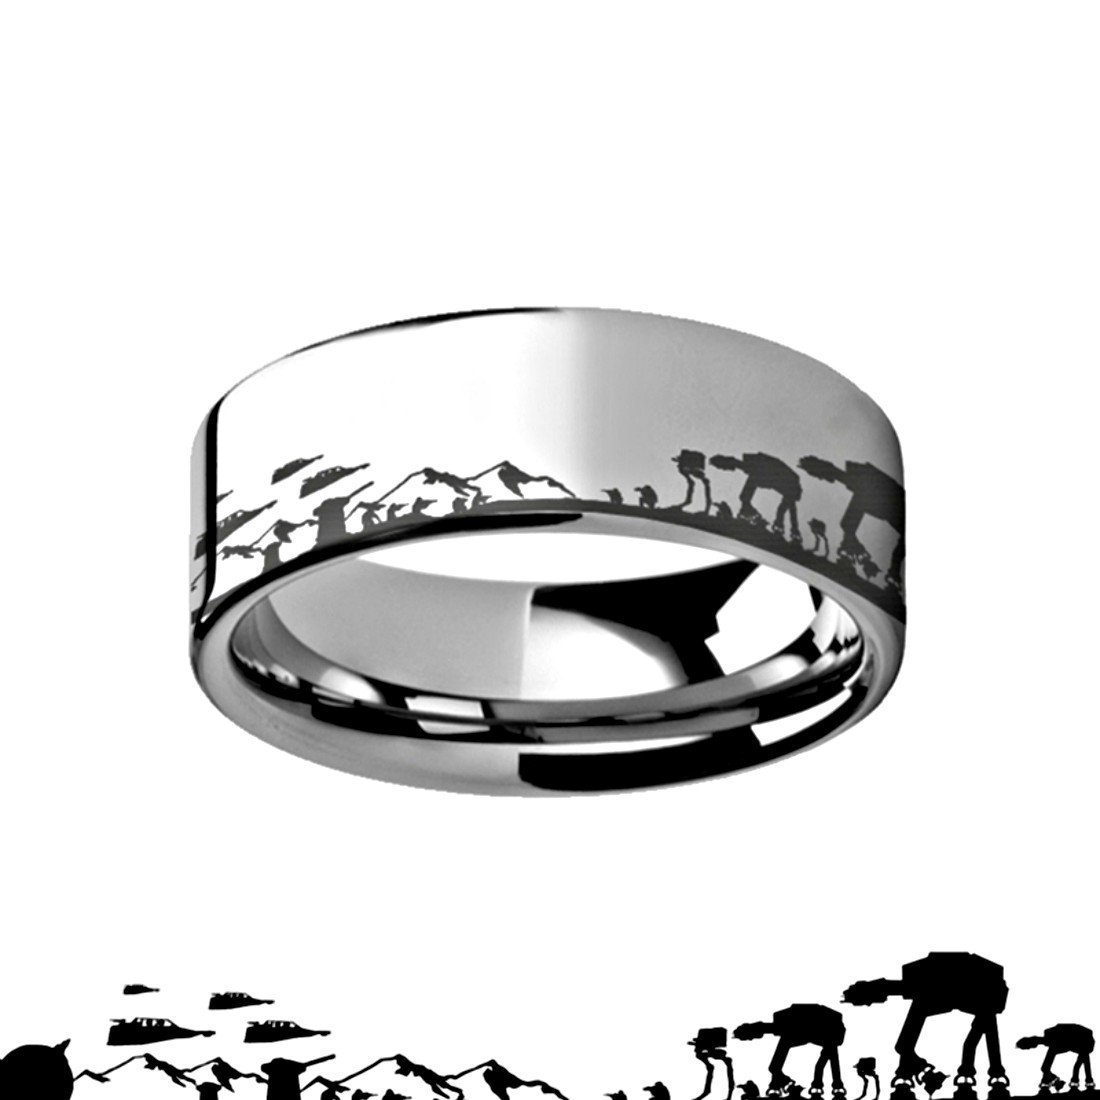 Hoth Battle Star Wars Alliance Galactic Imperial Invasion ATAT ATST Tungsten Engraved 10mm Band Ring by Thorsten from Roy Rose Jewelry